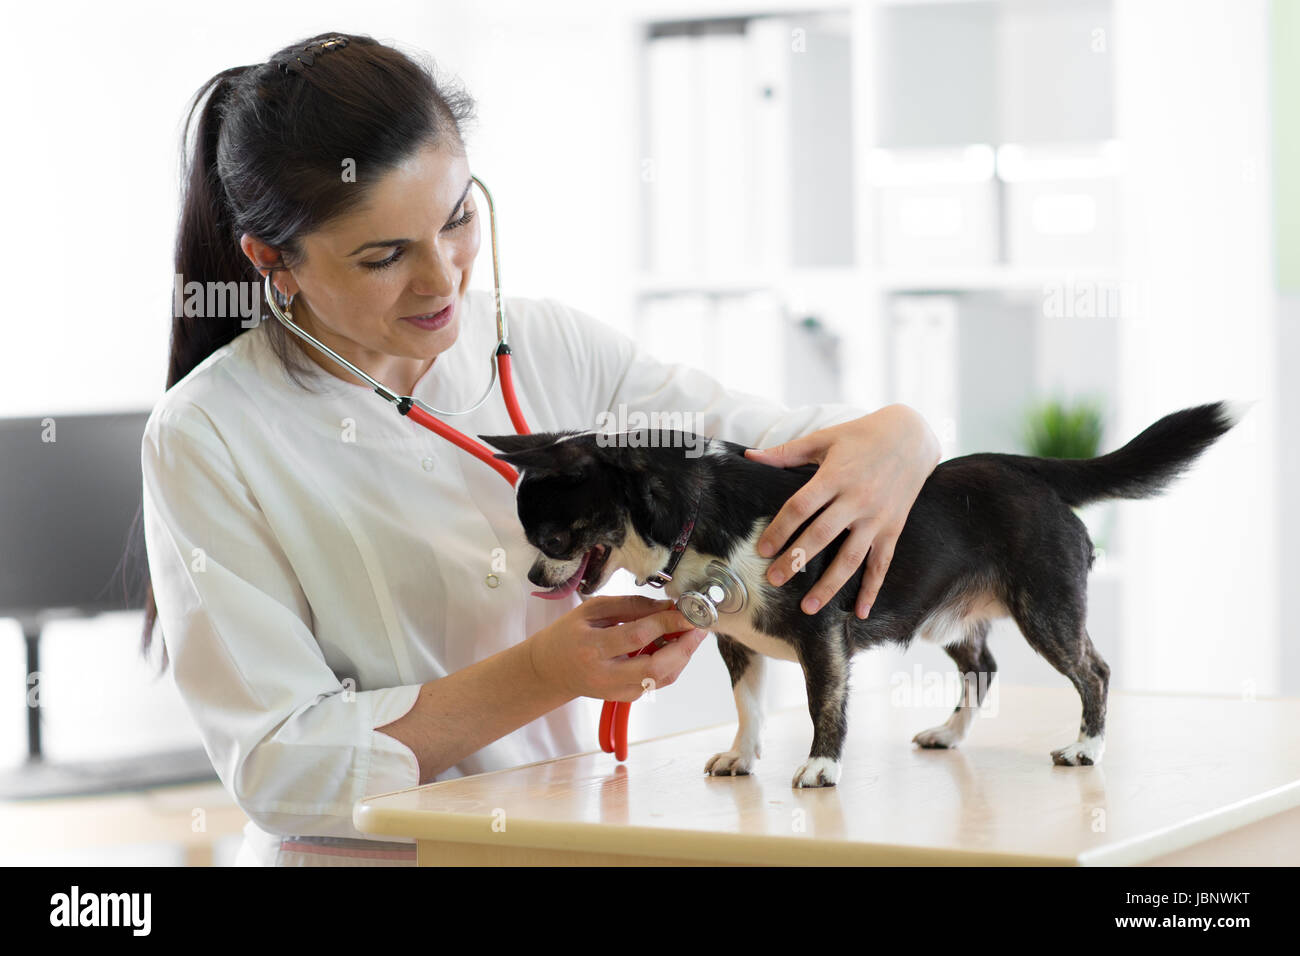 Cheerful young female veterinarian doctor using stethoscope listening to the heartbeat of a terrier canine dog at - Stock Image